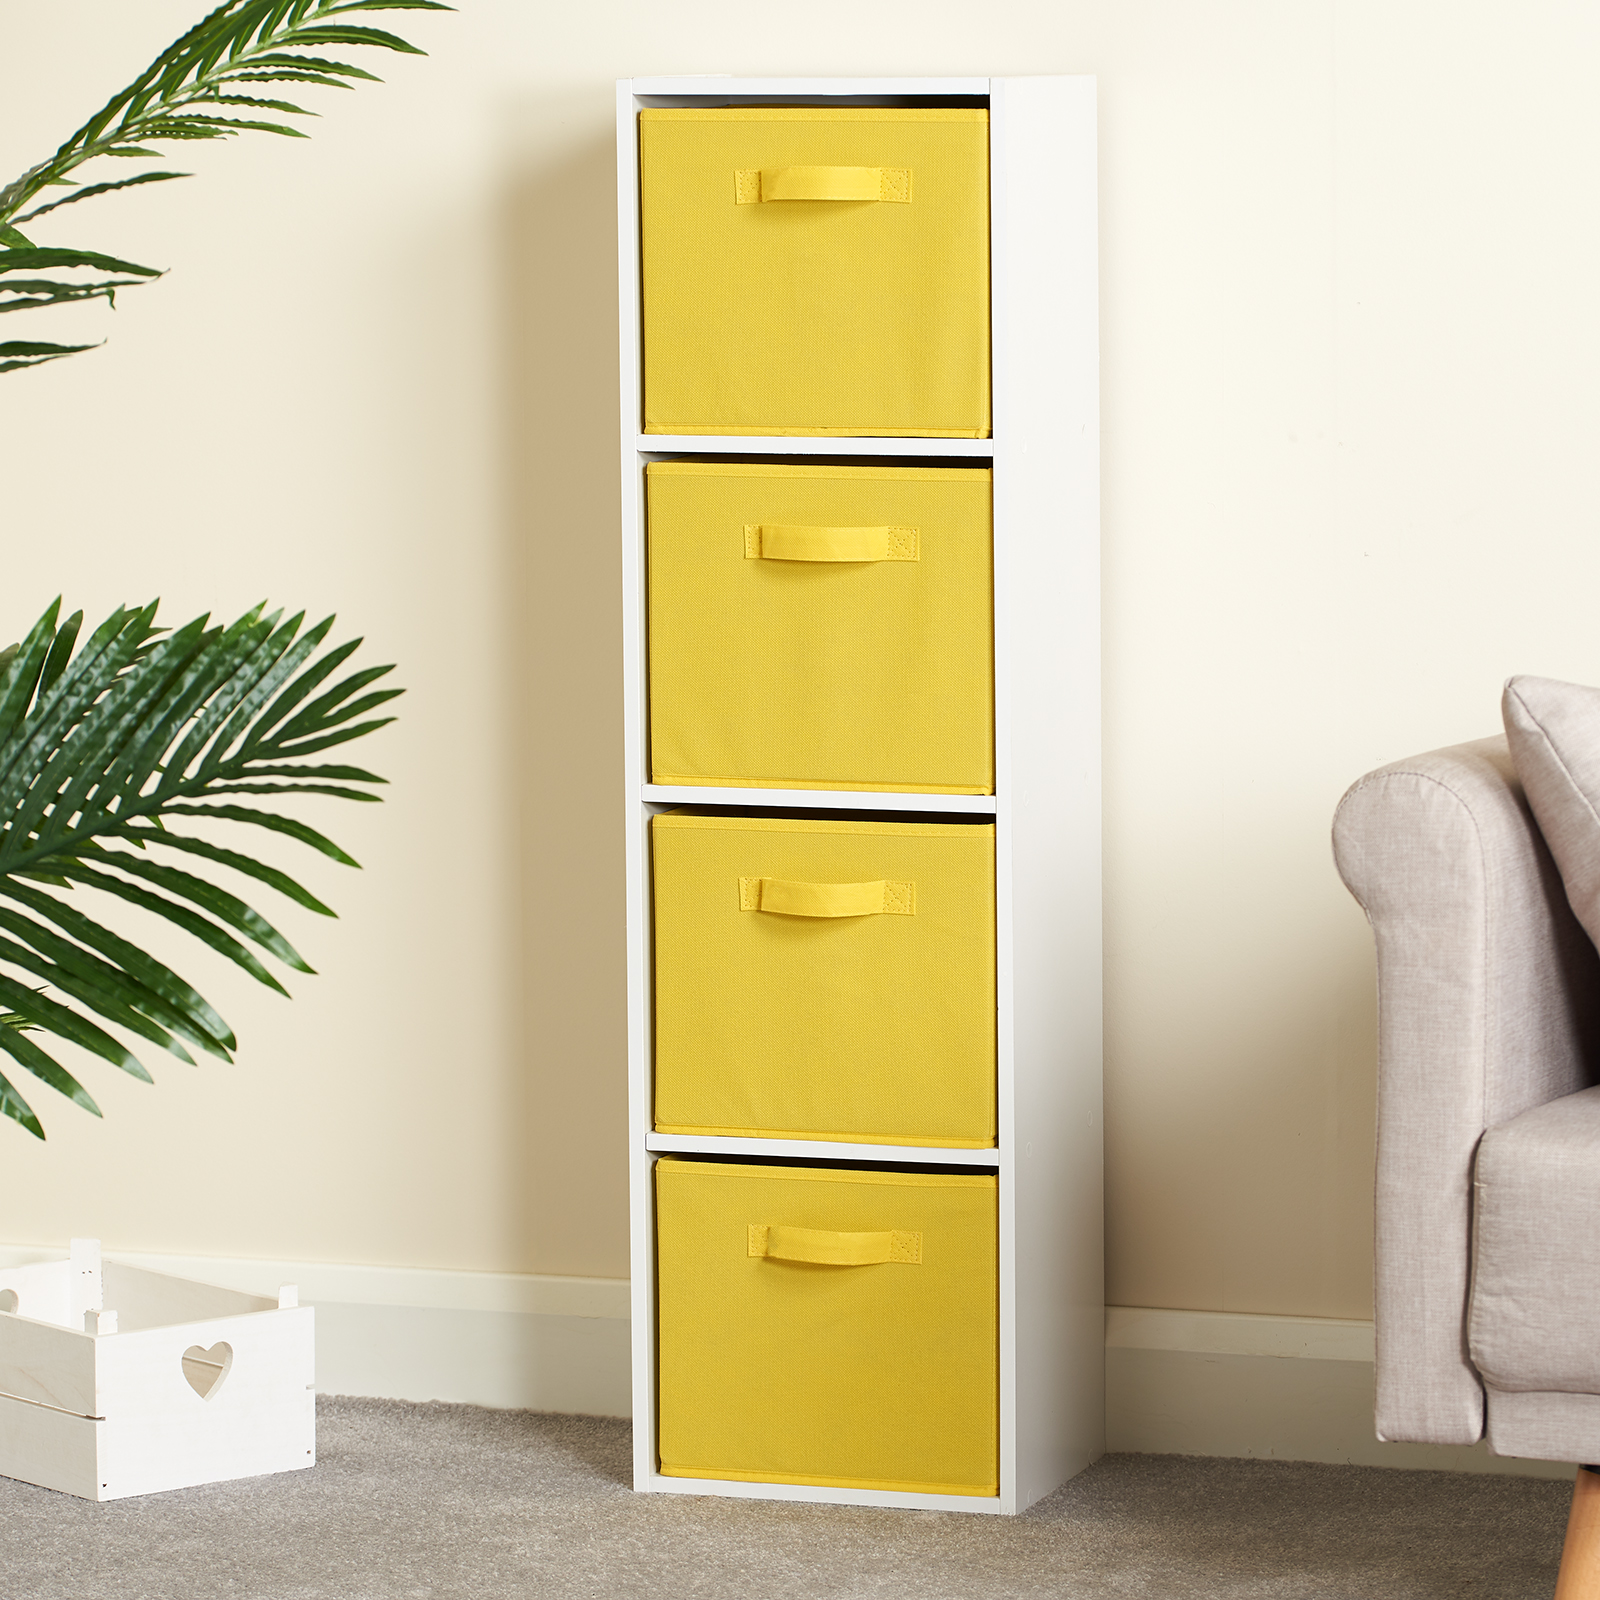 Hartleys-4-Tier-White-Bookcase-Wooden-Display-Shelving-Unit-amp-Fabric-Storage-Box thumbnail 46